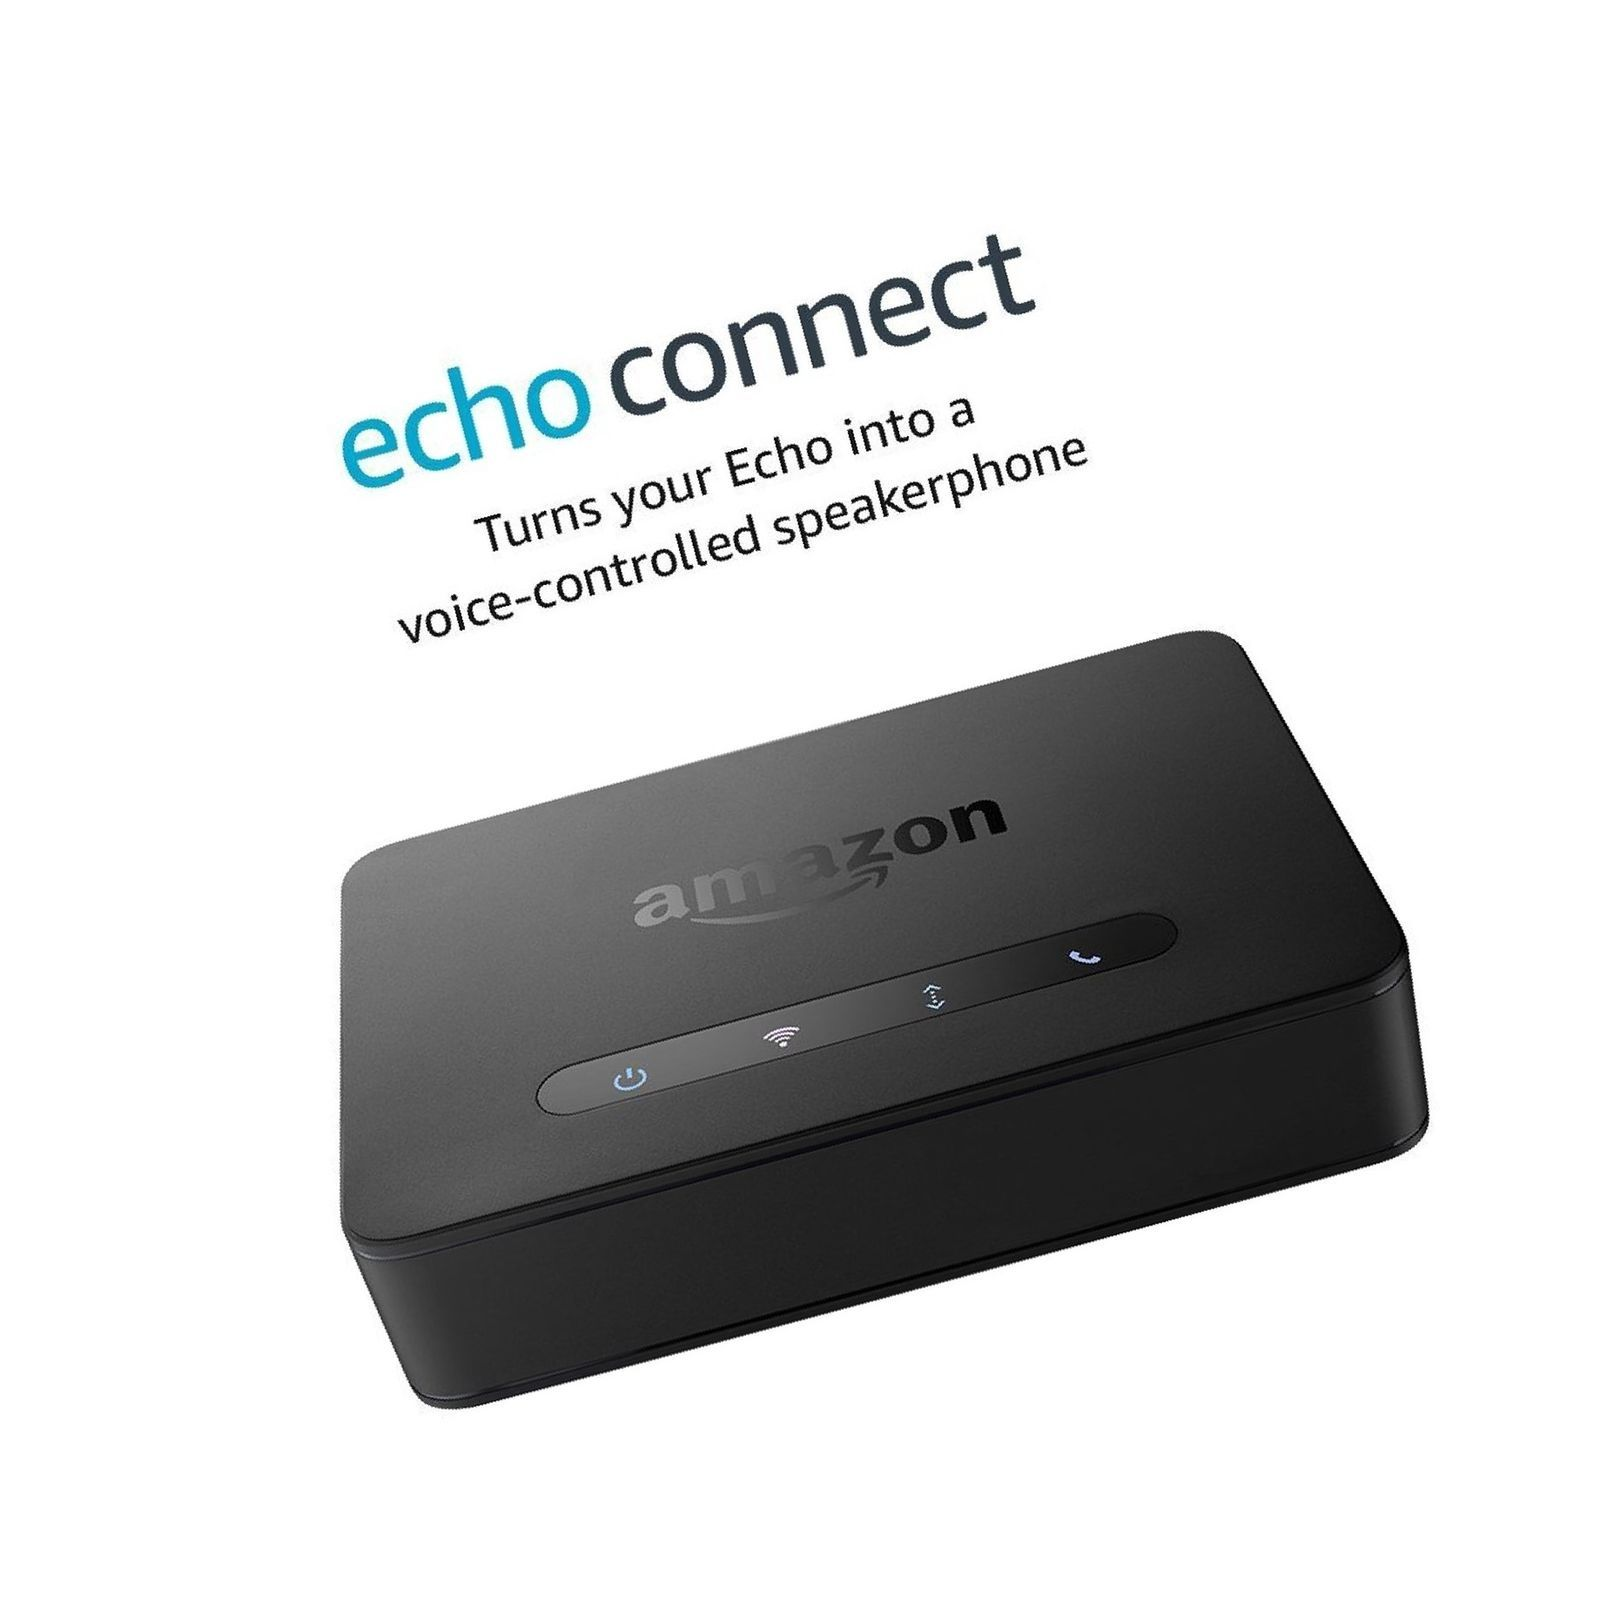 Echo Connect  requires Echo device, home phone service, and smartphone for se...